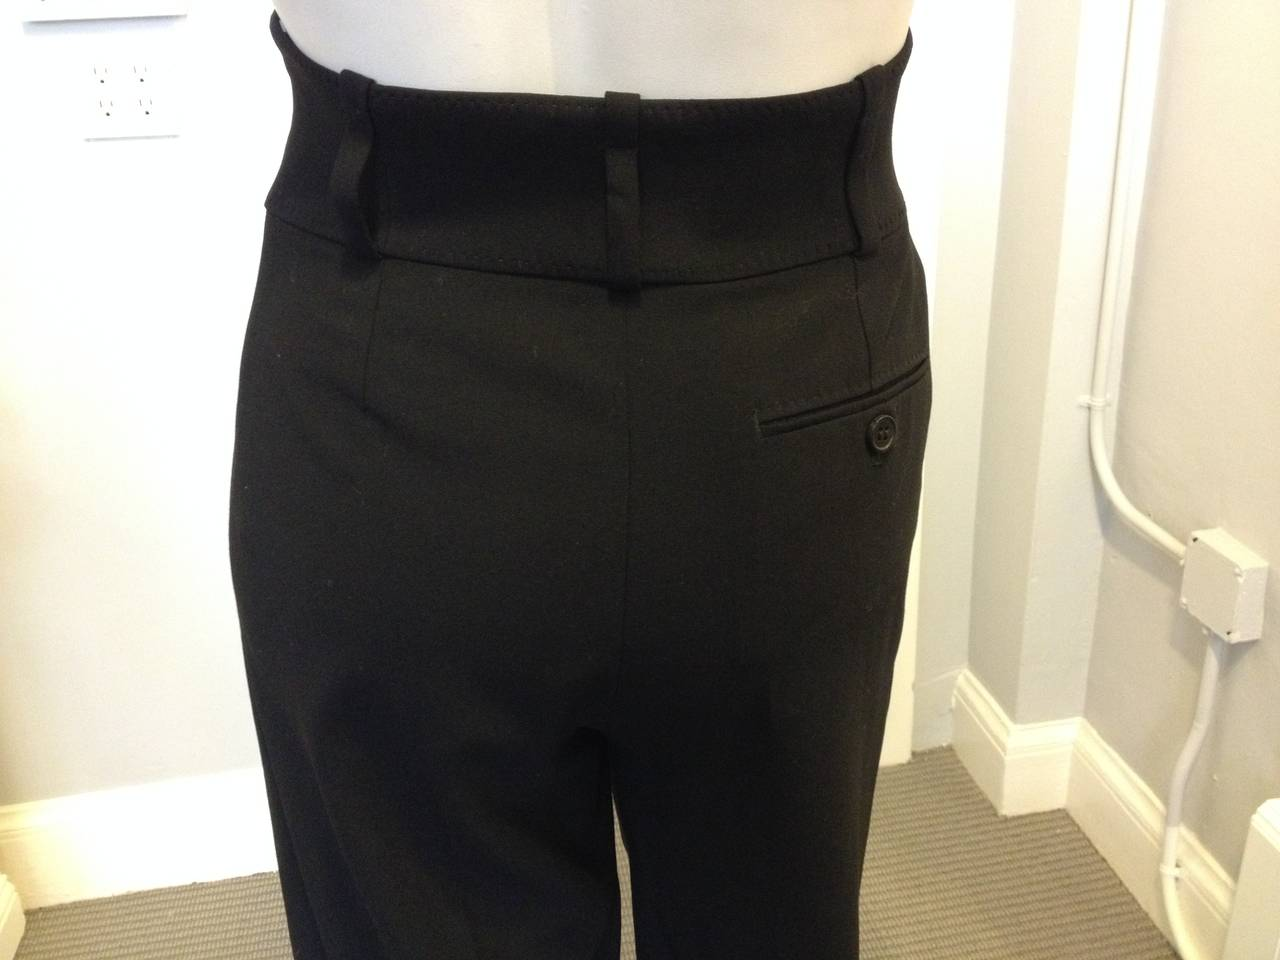 Hermes Black Pant with High Waist 3